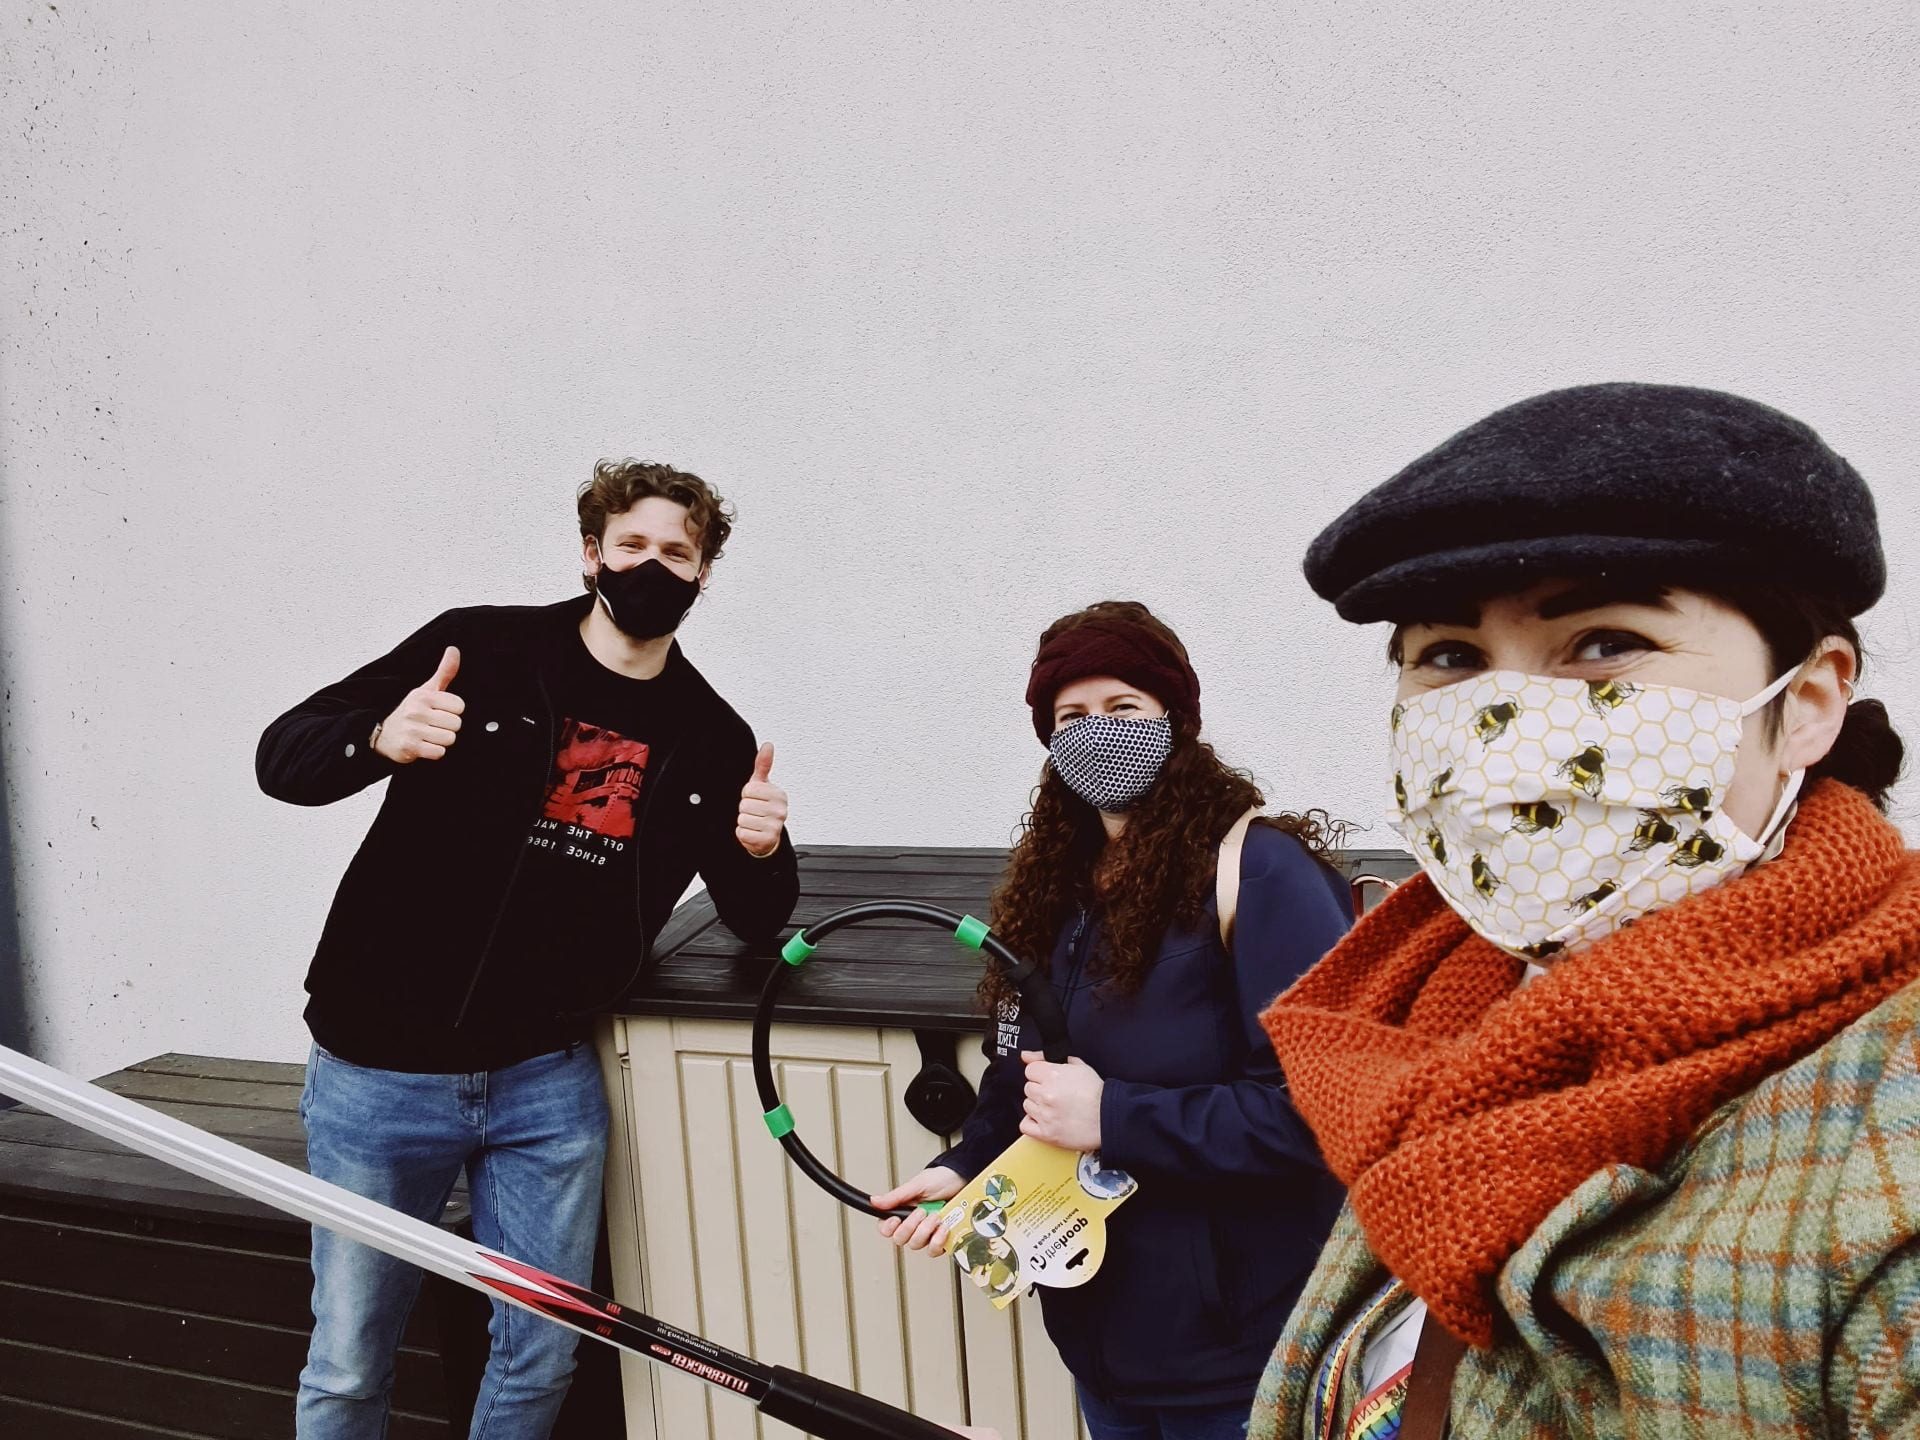 Three people hold litter picking equipment and look happy under their masks. They are socially distanced.